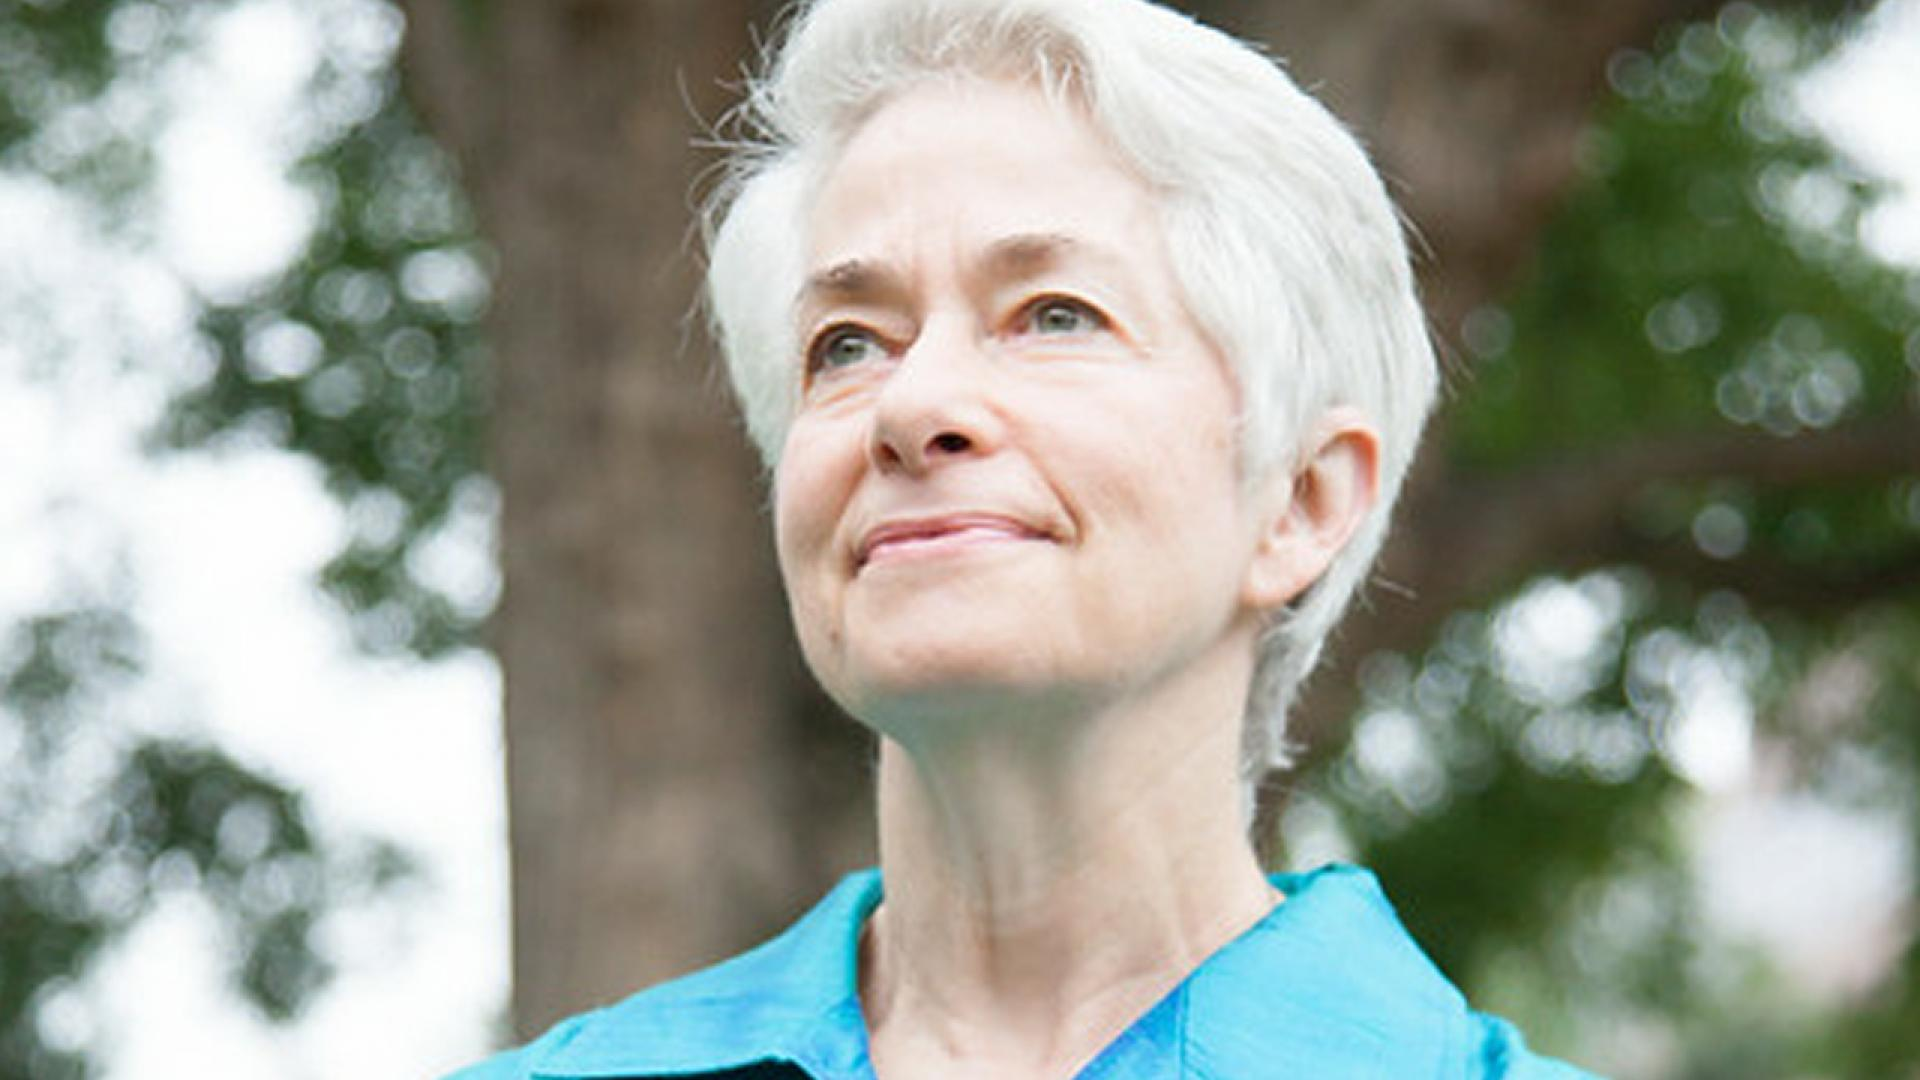 Heather Booth Founded the Jane Collective before Roe v. Wade.